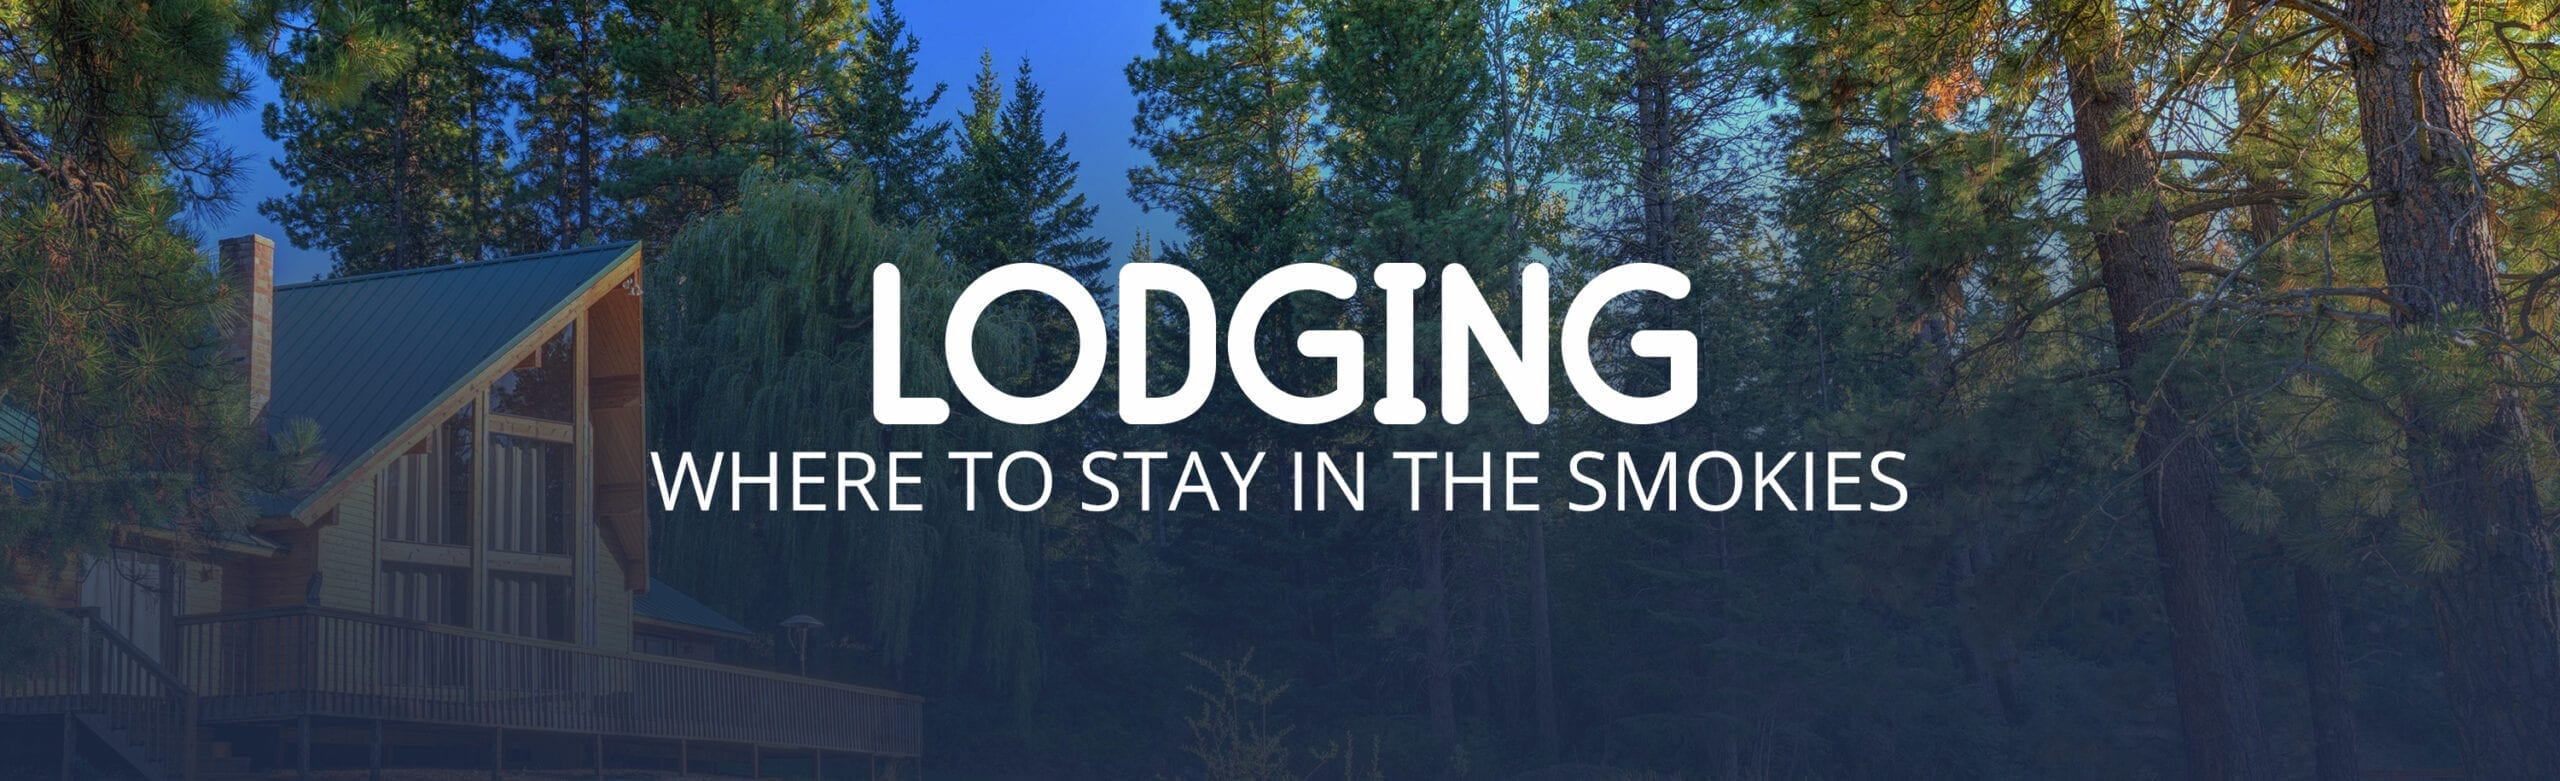 Cabins and lodging in the Smokies